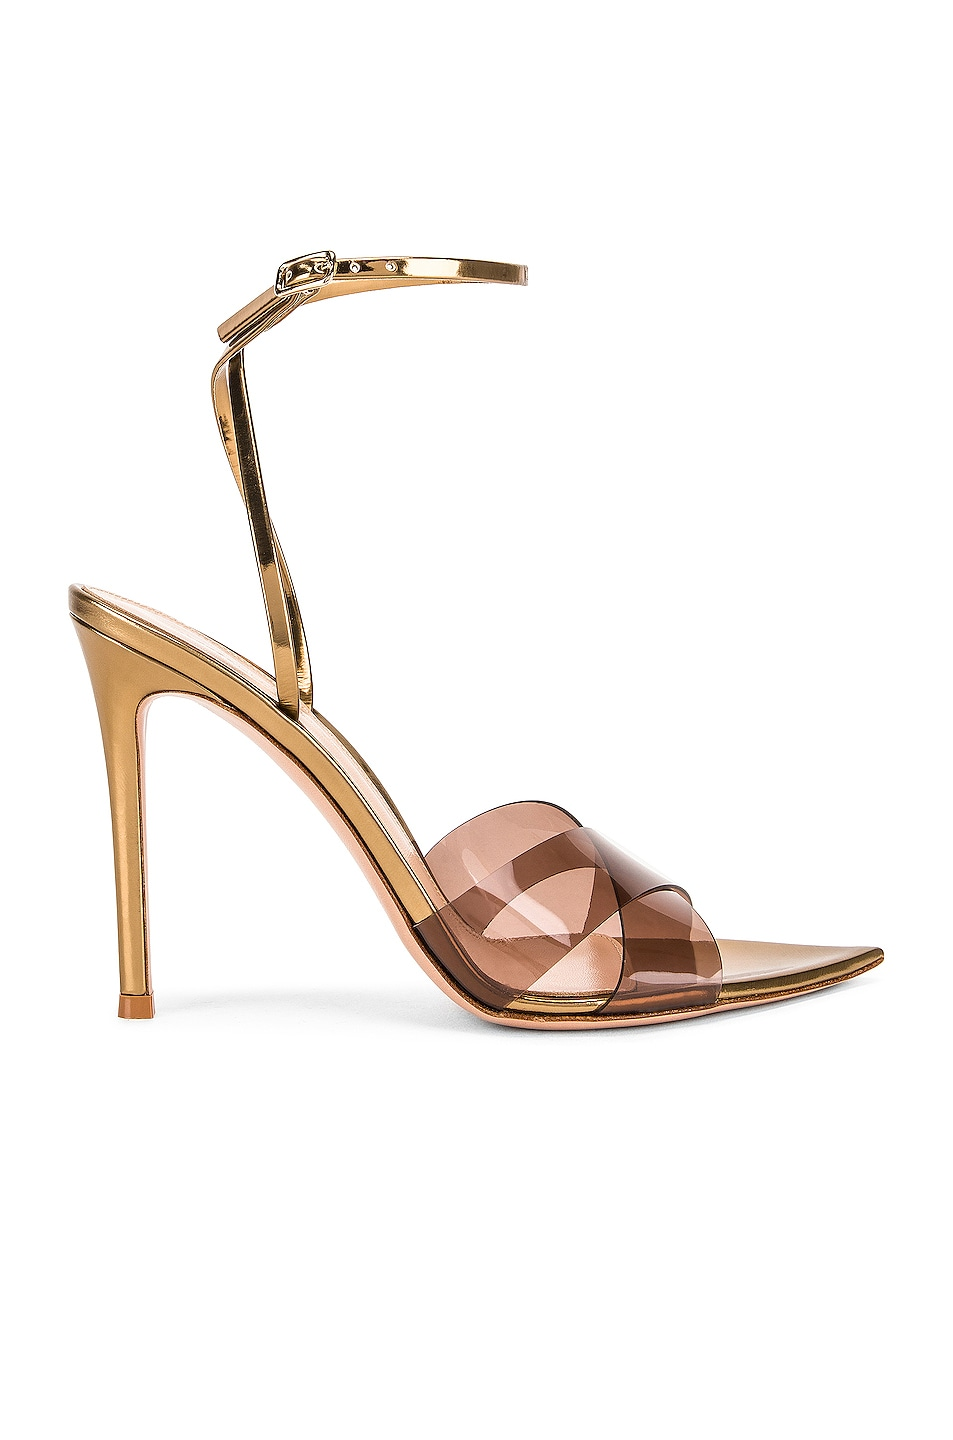 Image 1 of Gianvito Rossi Stark Plexi Ankle Strap Heels in Blush & Gold